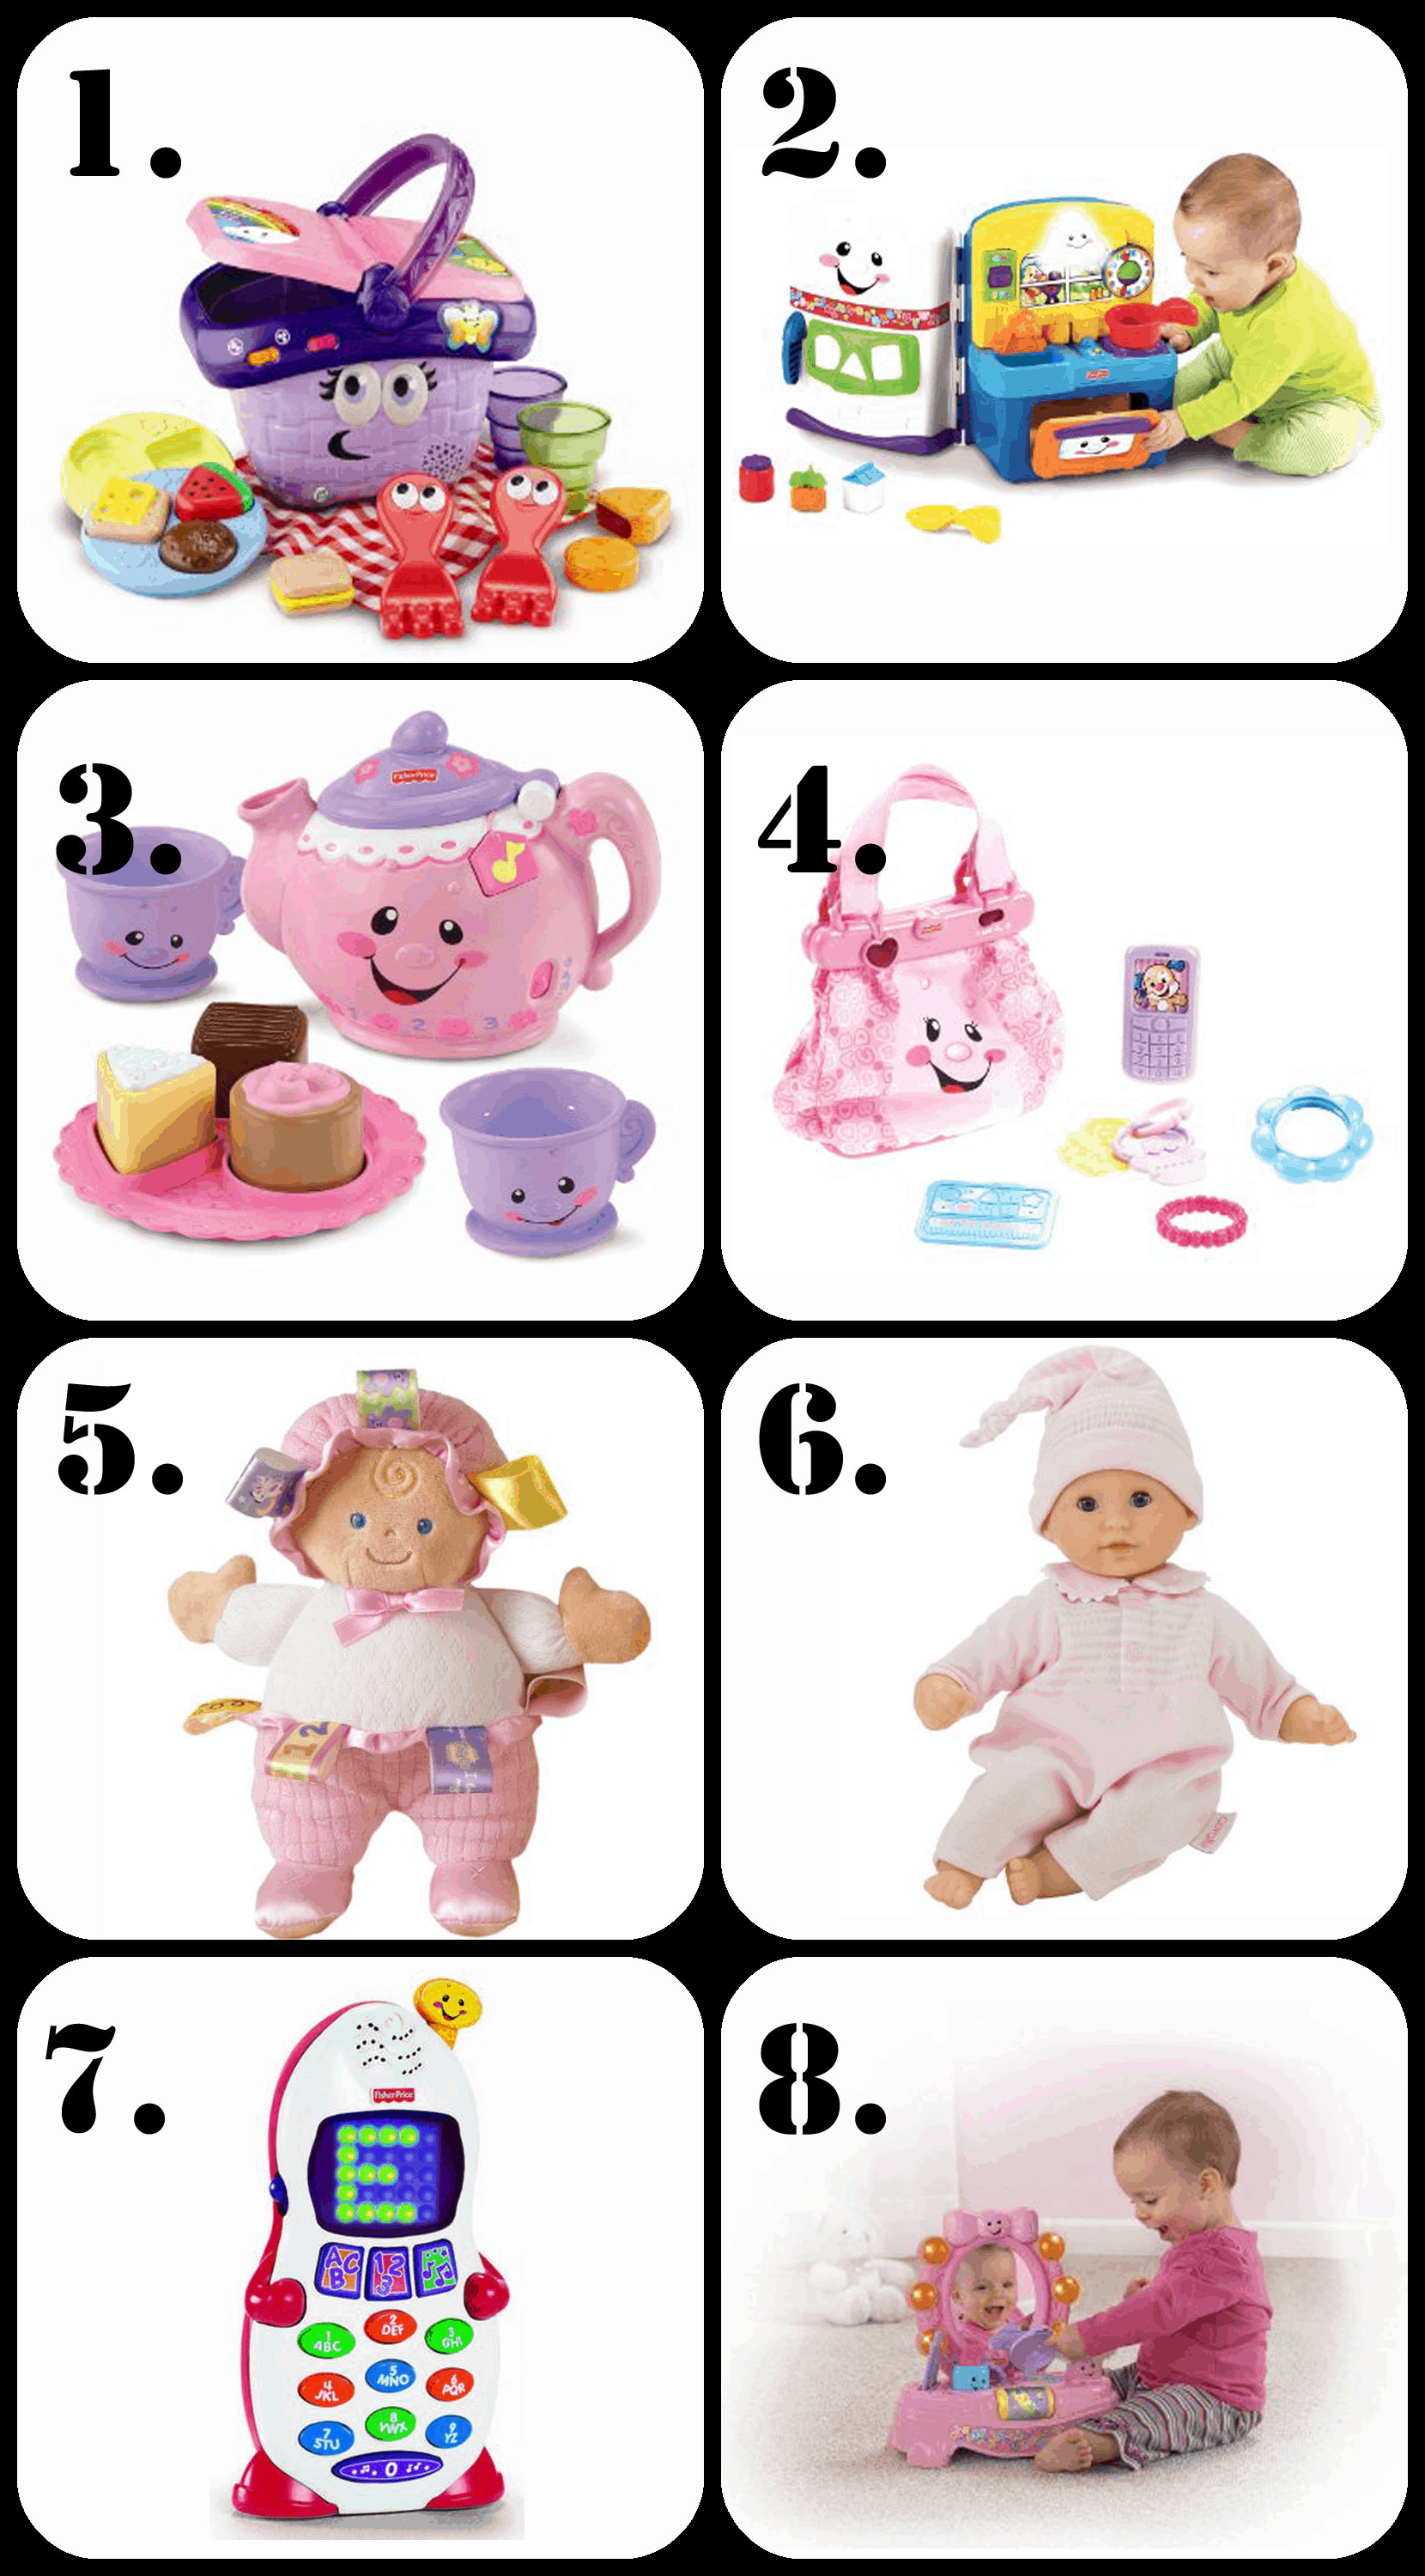 Best ideas about Gift Ideas For 1 Year Old . Save or Pin The Ultimate List of Gift Ideas for a 1 Year Old Girl Now.